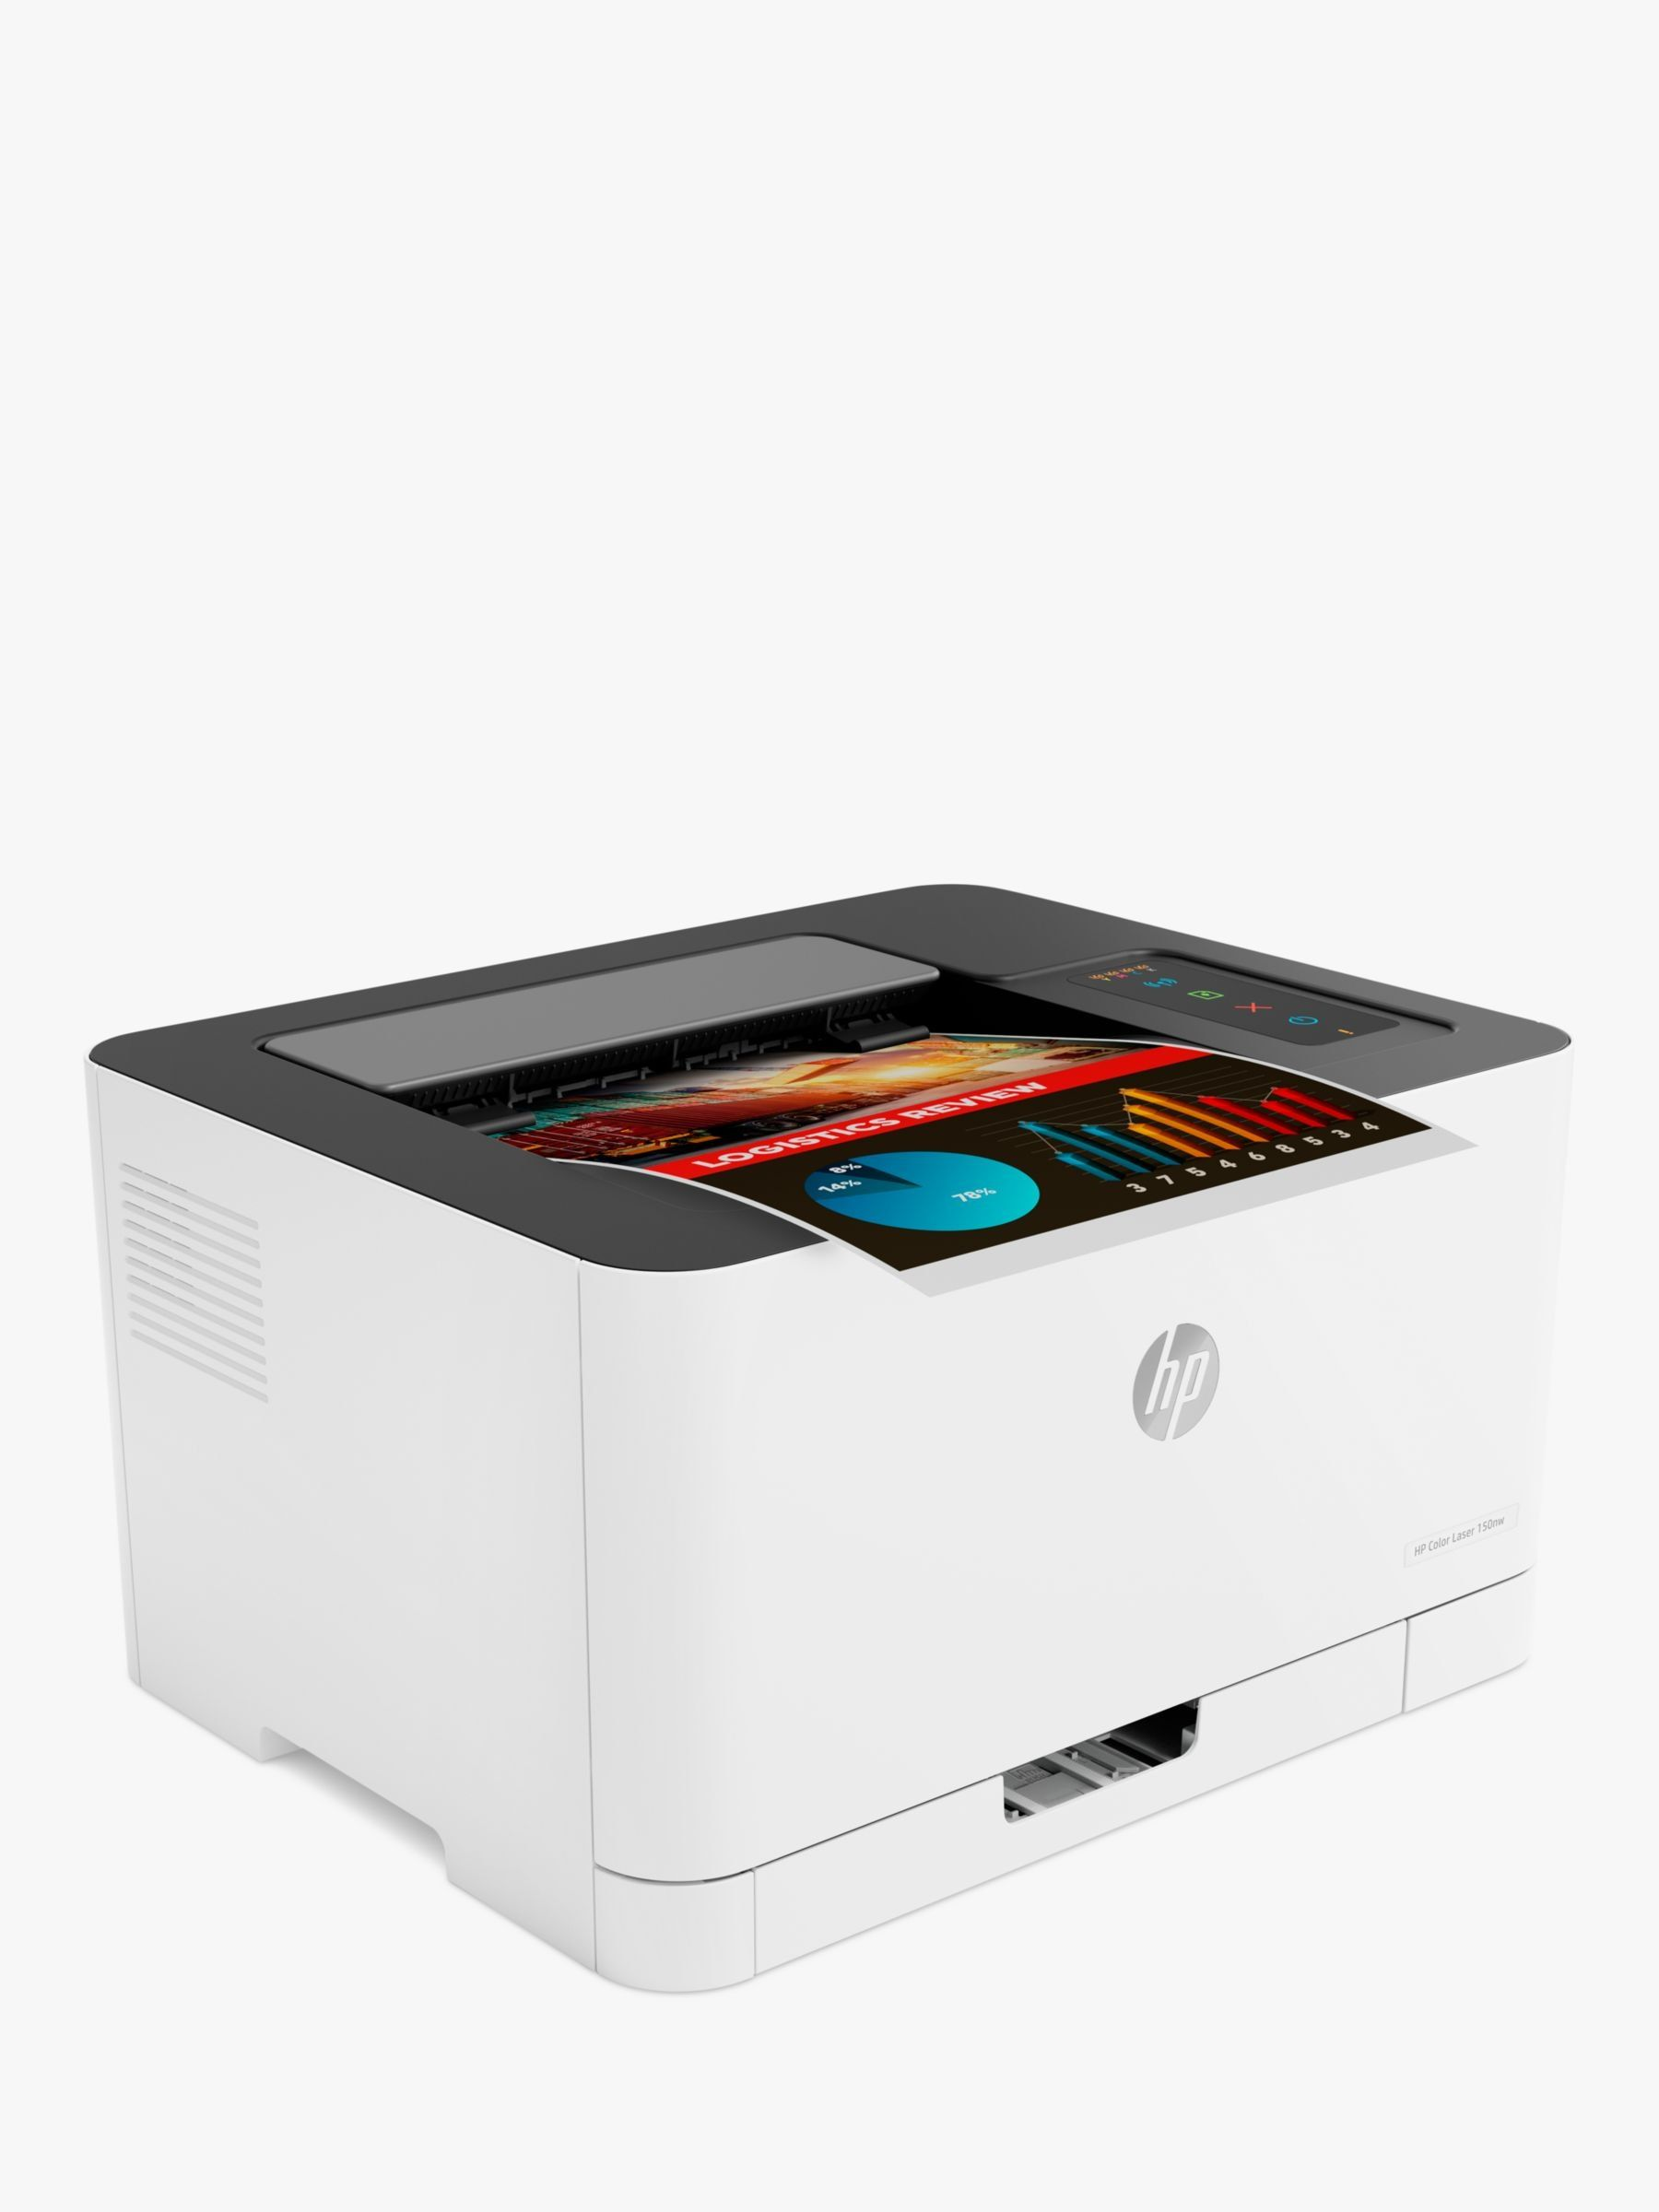 Hp Laserjet 150nw Wireless Colour Printer With Wi Fi White Wireless Printer Printer Wifi